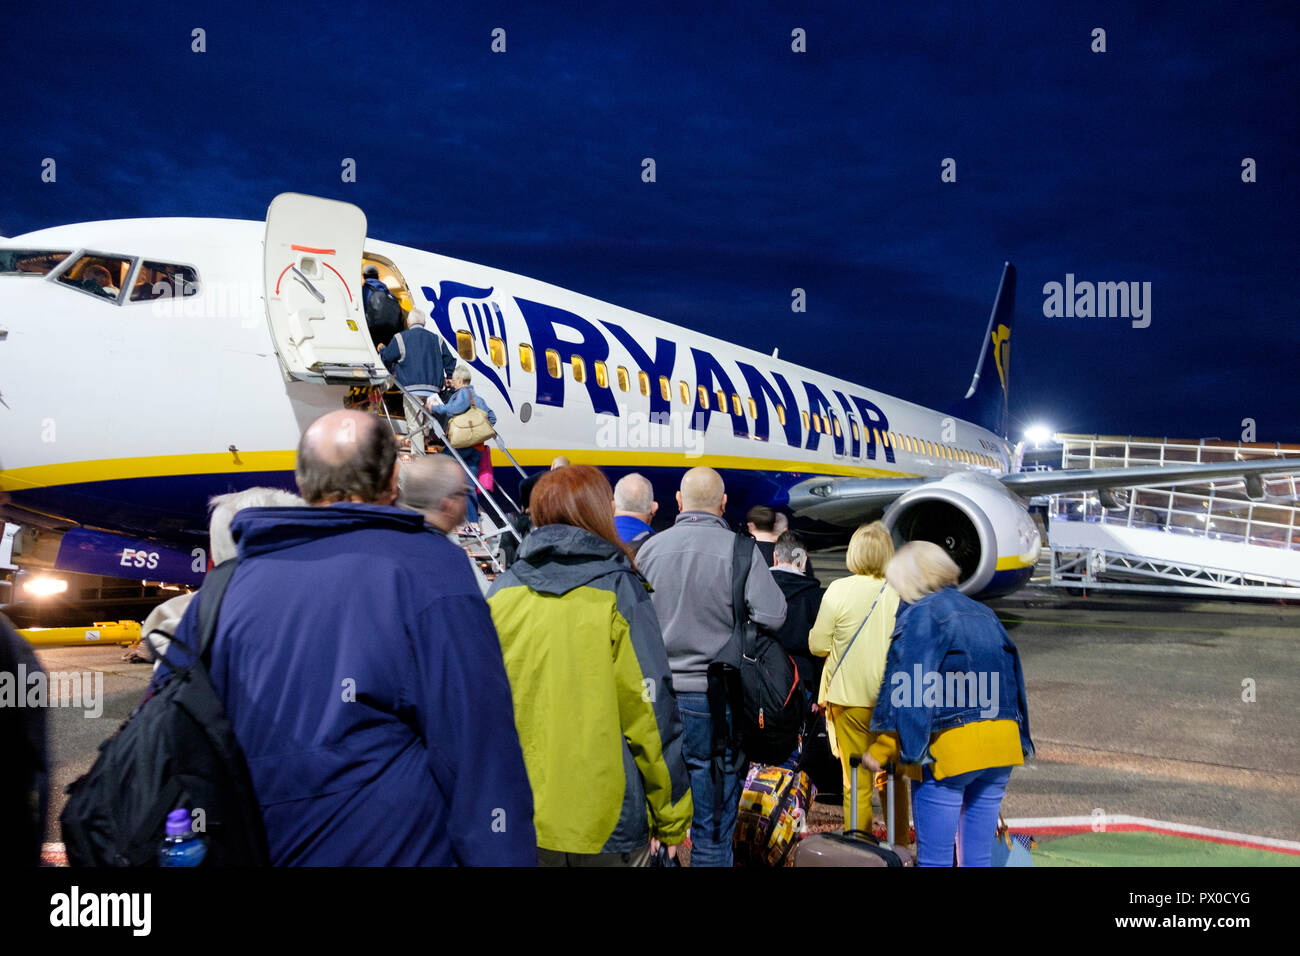 Passengers board a Ryanair aircraft for a flight from Glasgow Prestwick airport. - Stock Image